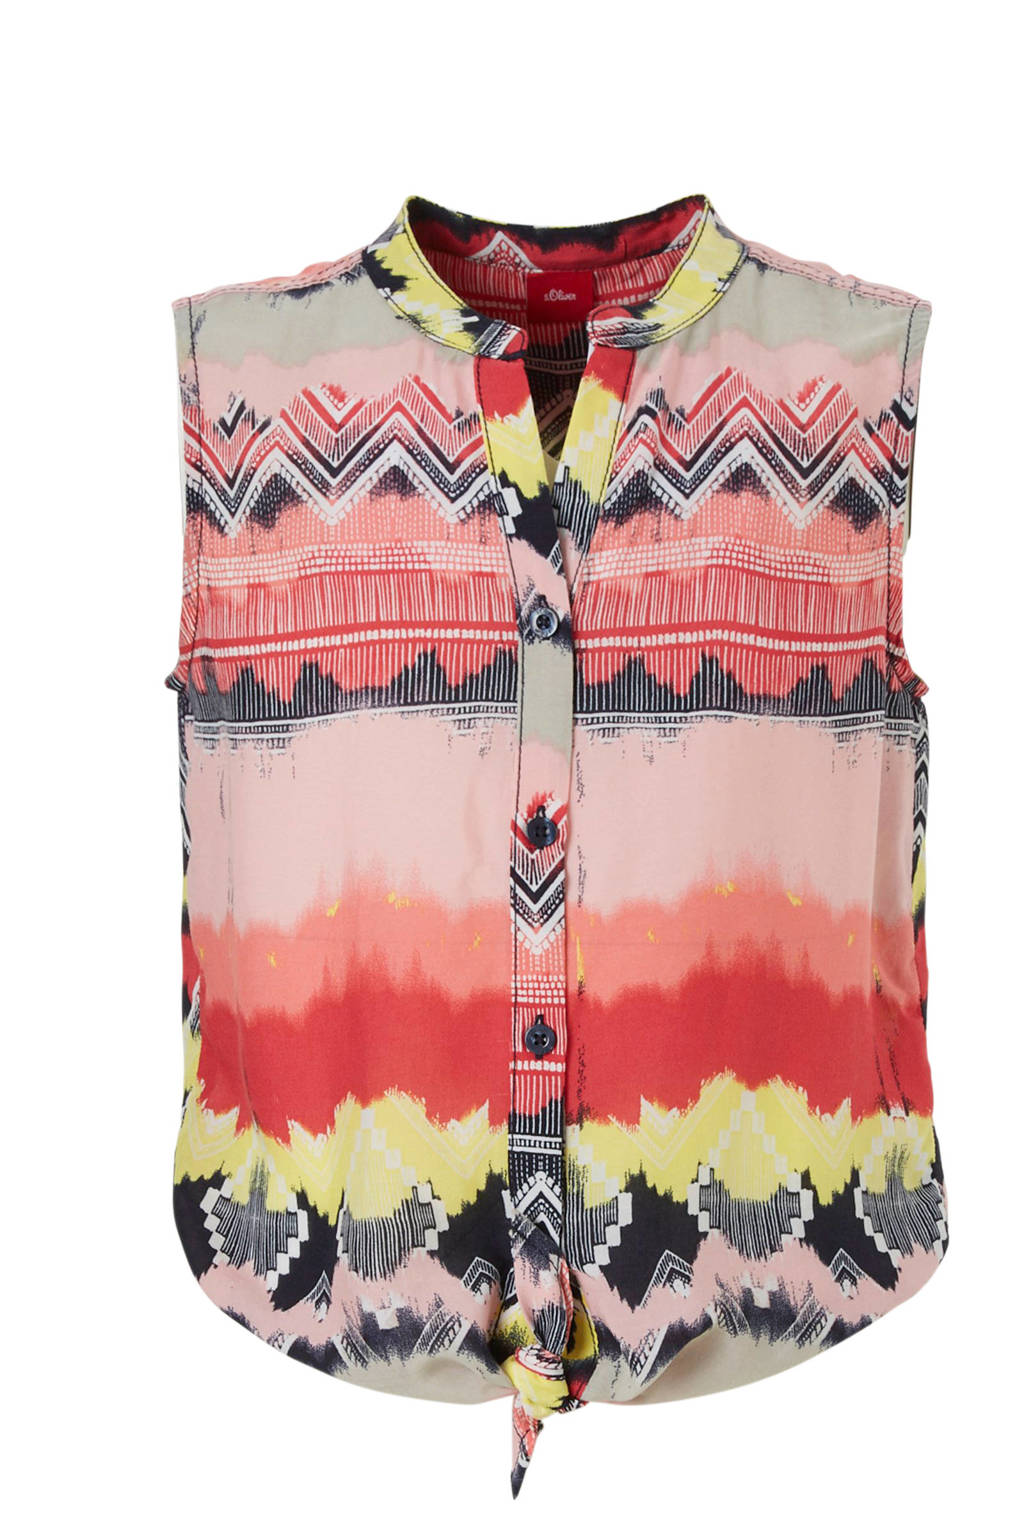 s.Oliver blouse met all over print, rood/blauw/geel